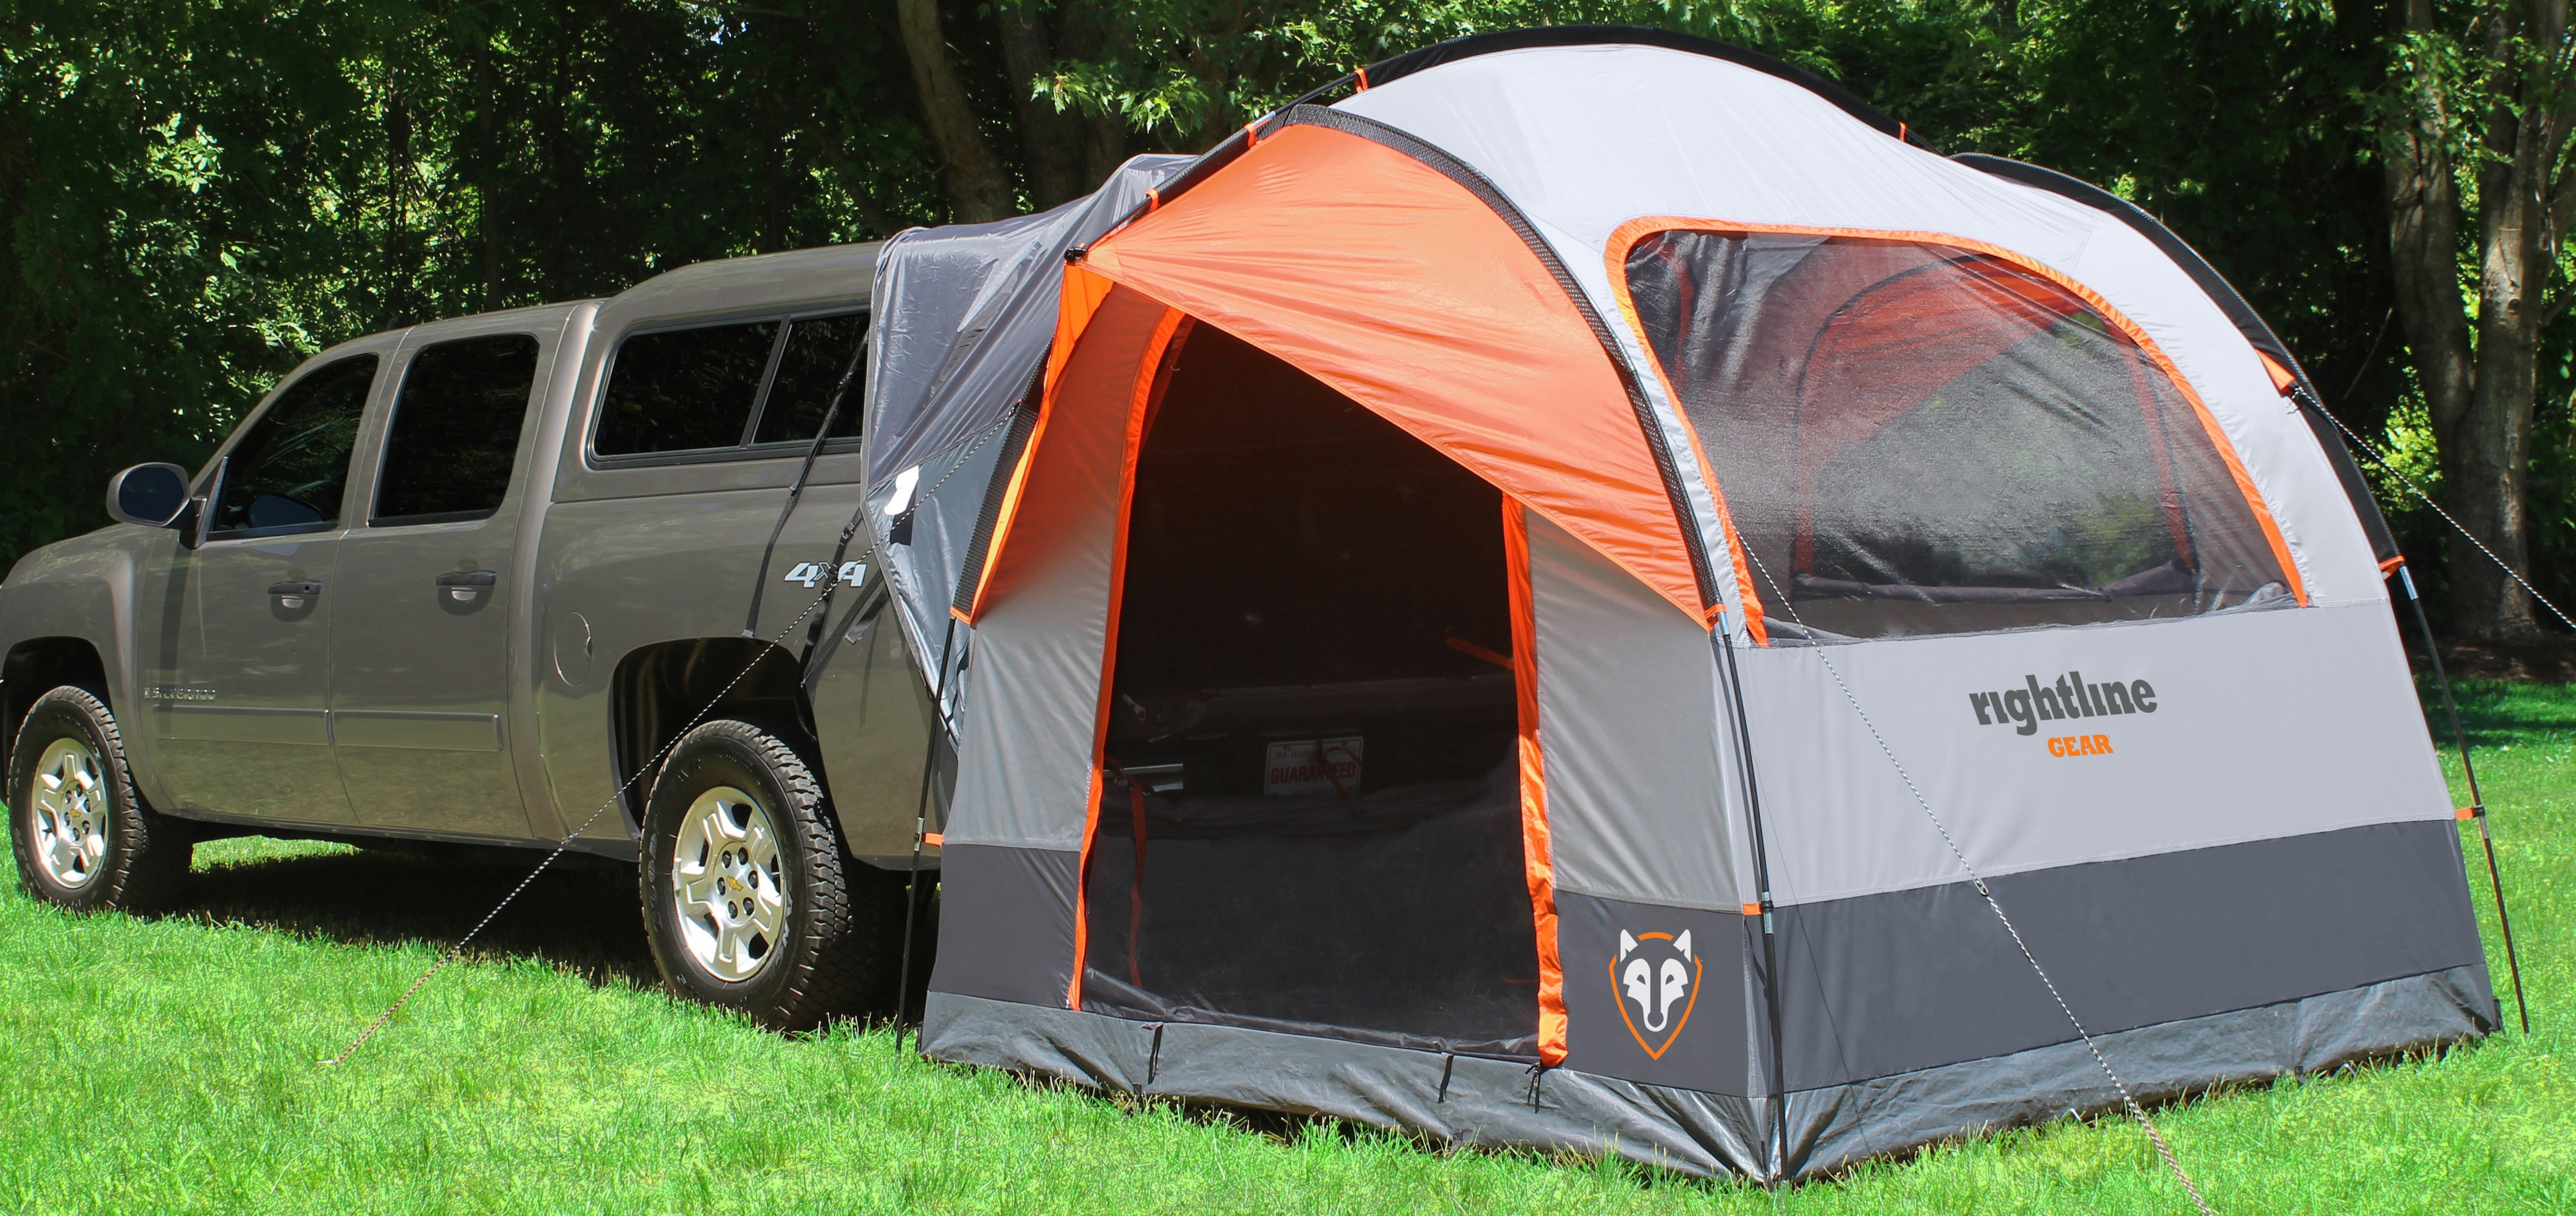 rightline gear truck tents and suv tents. Black Bedroom Furniture Sets. Home Design Ideas